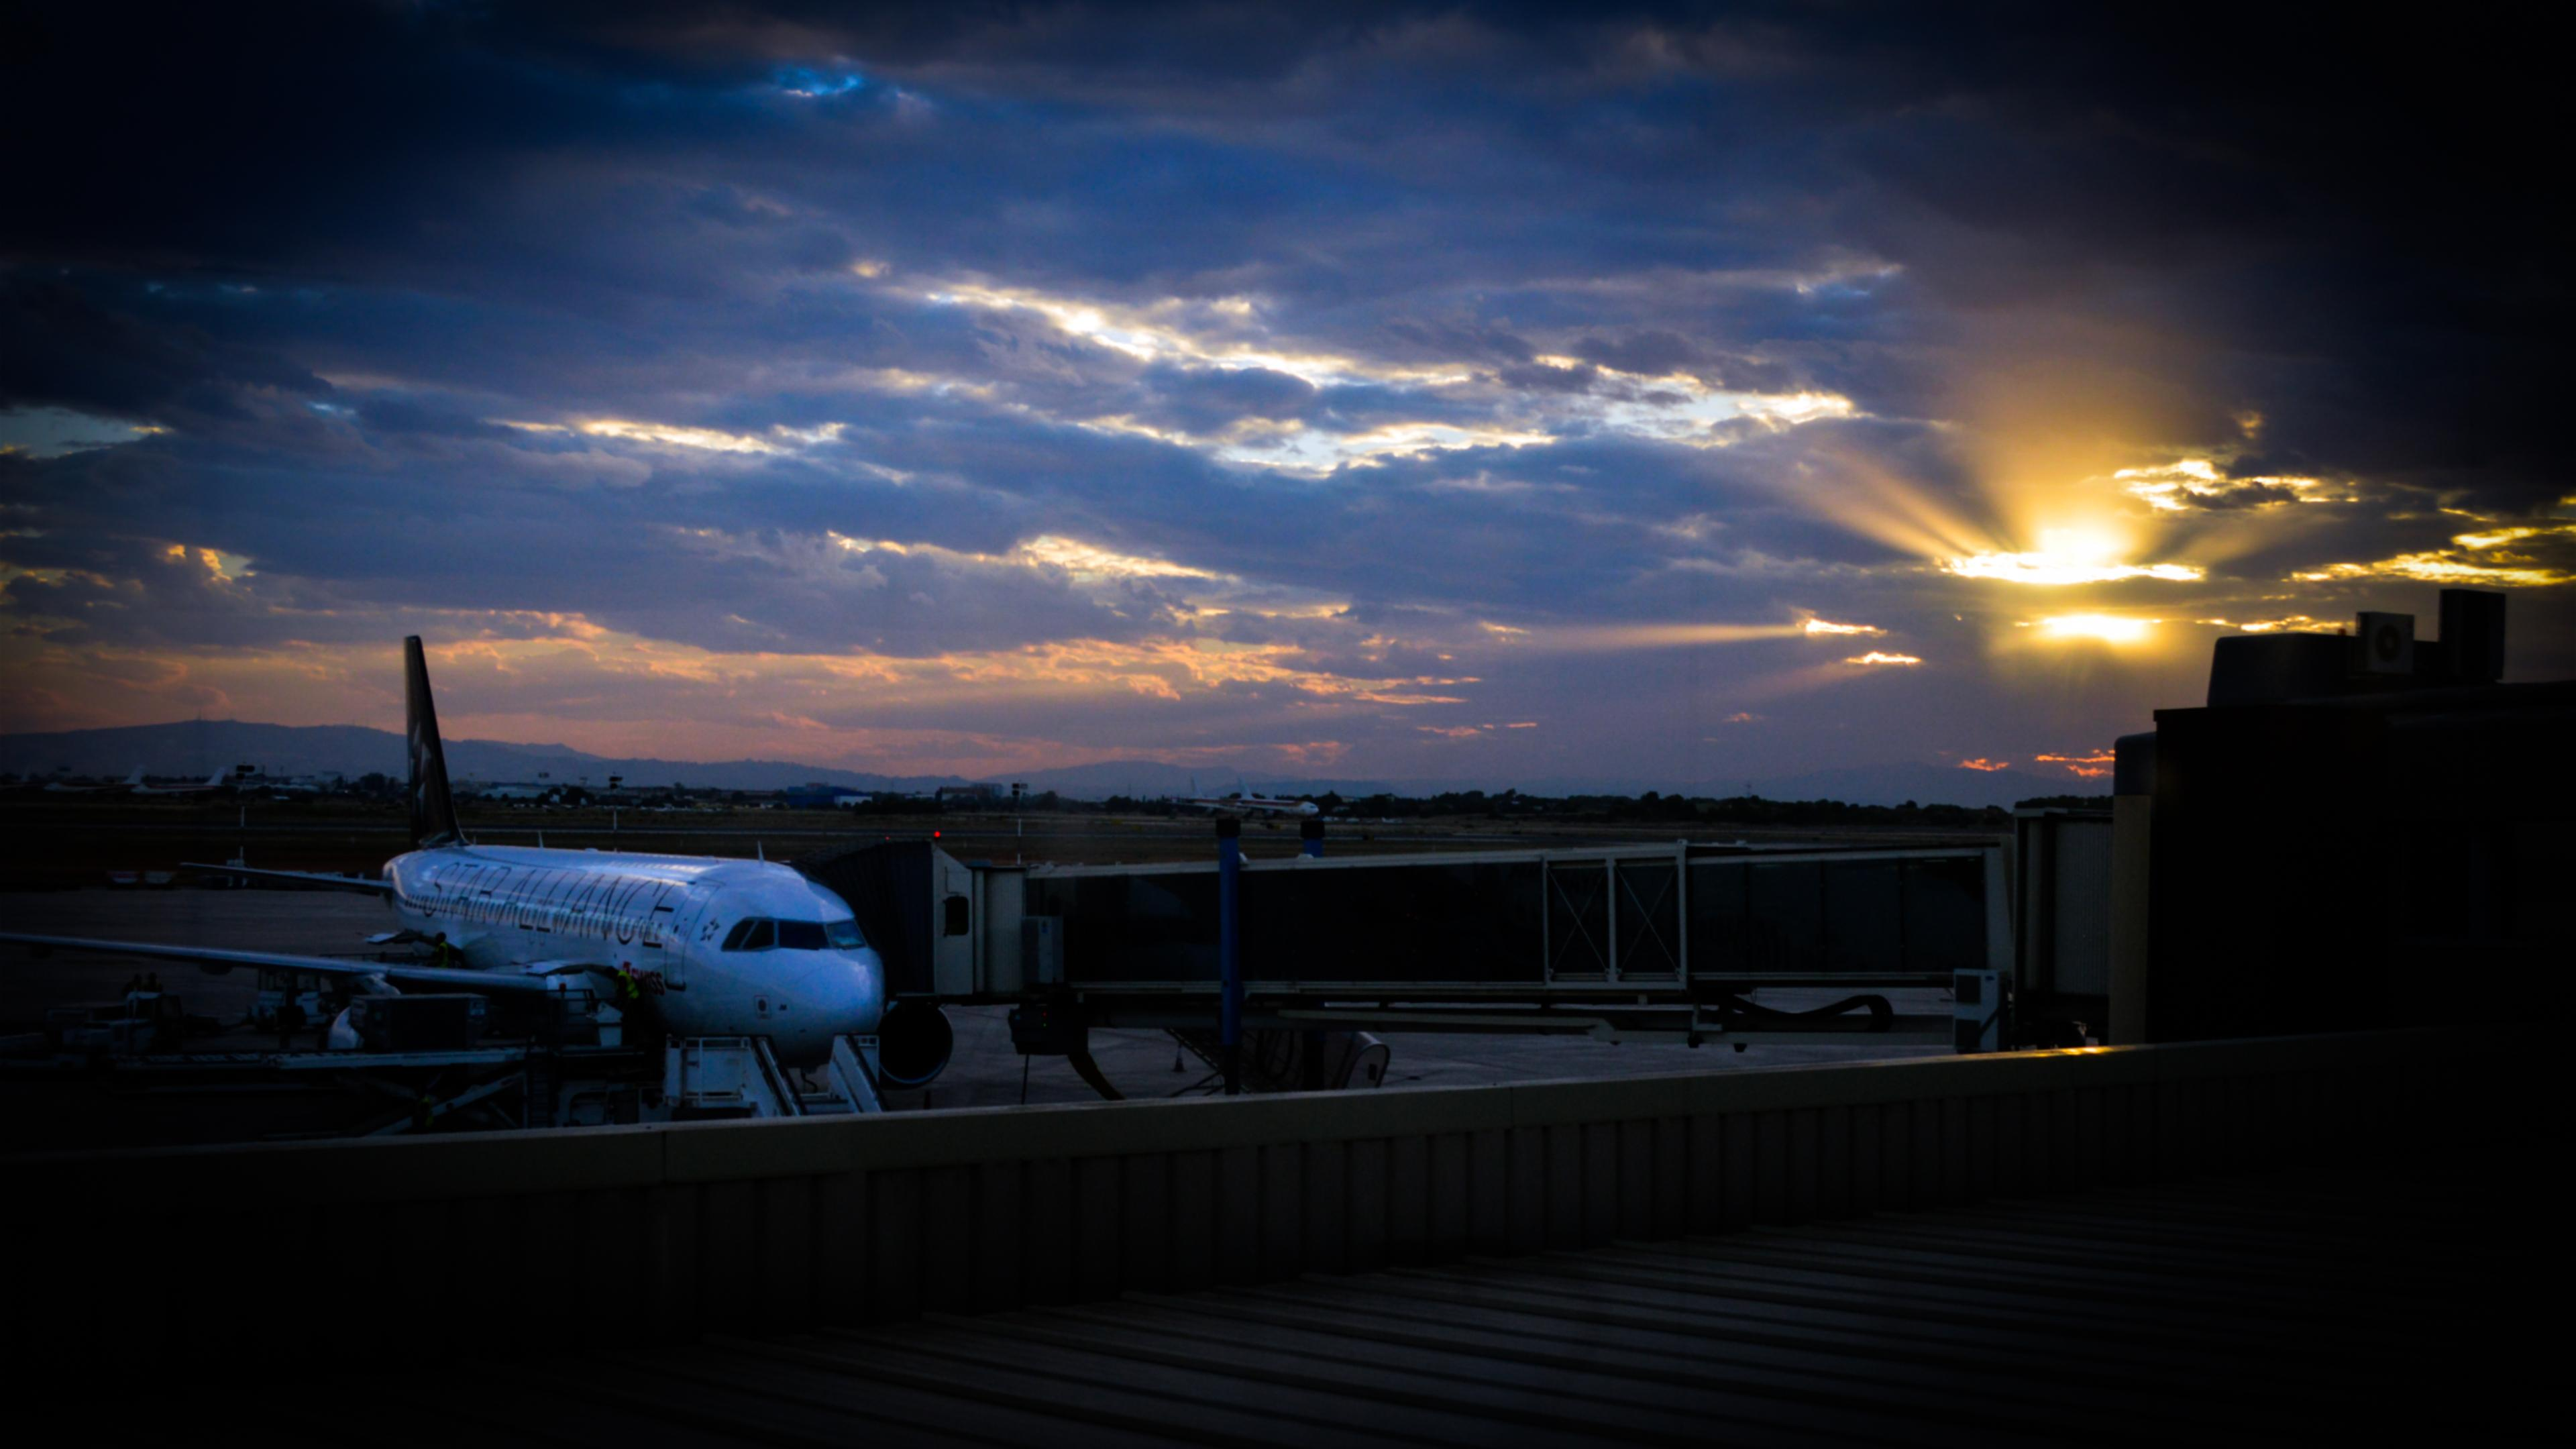 Wallpaper 3840 1200 Girl Hd Valencia Airport At Sunset Wallpaper Download Free